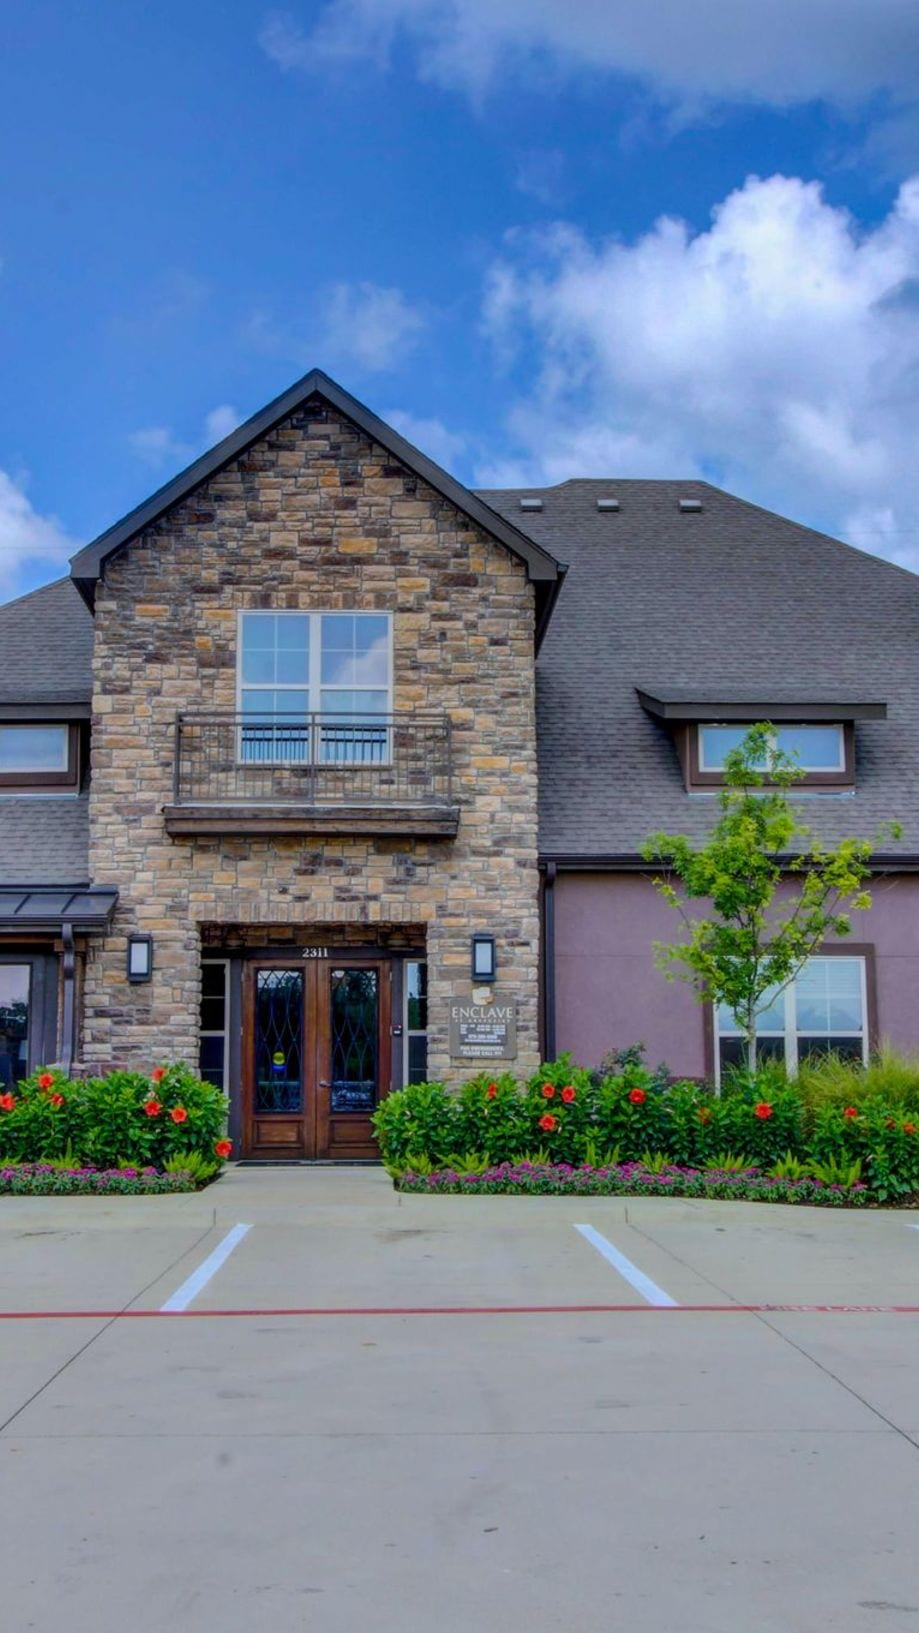 Garage Apartments For Rent Grapevine Tx Apartments For Rent Grapevine Tx Enclave At Grapevine